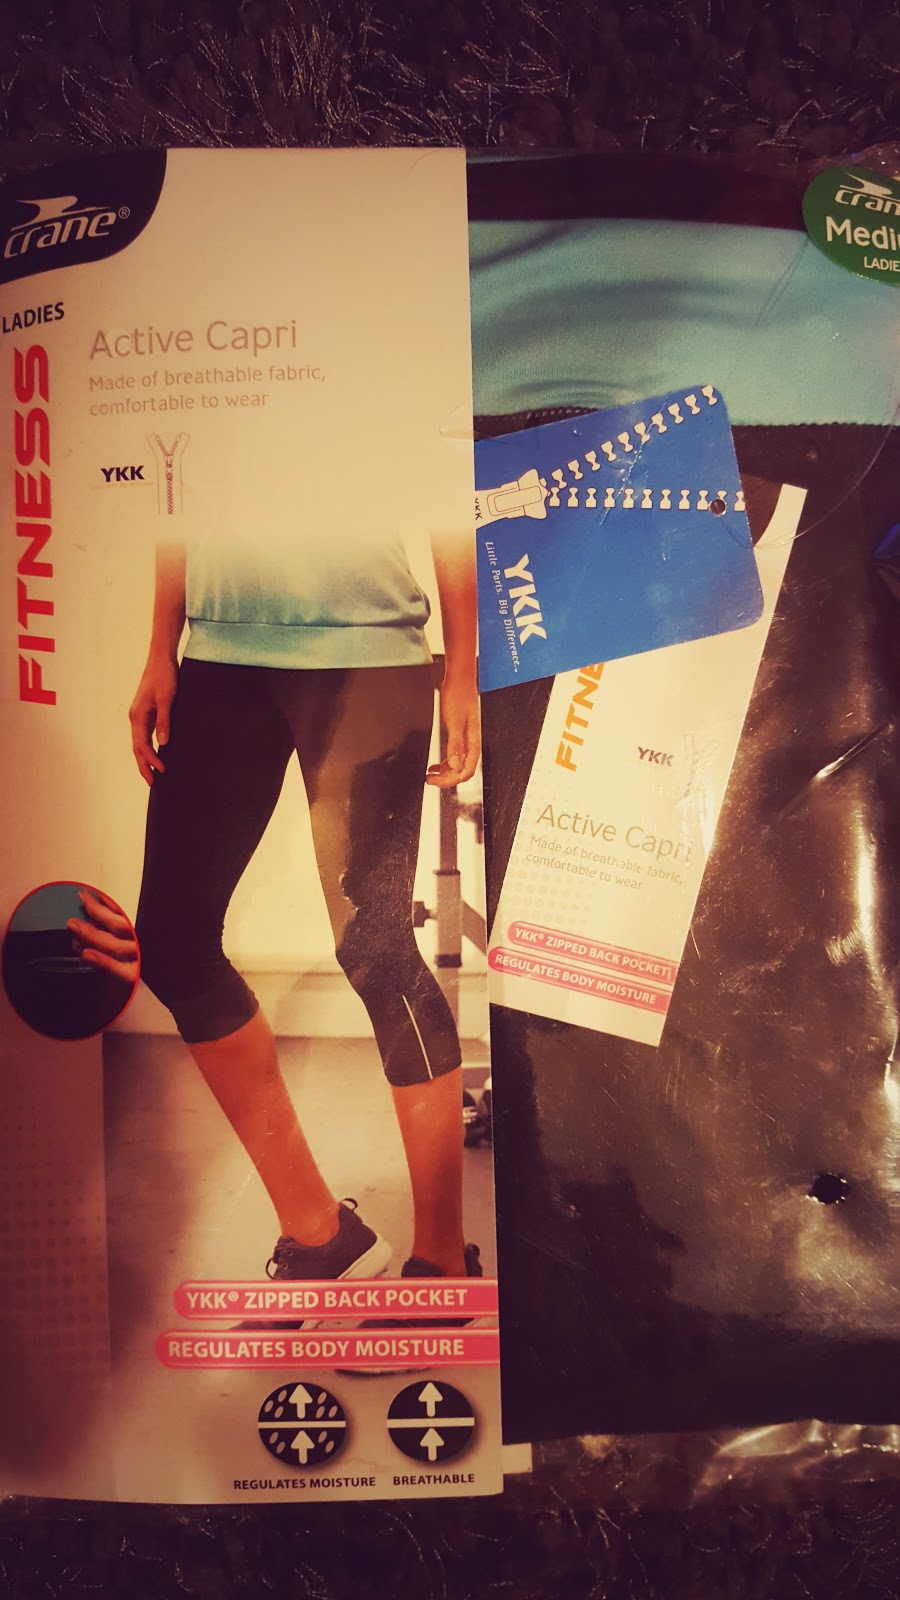 Aldi's Fitness Range: New Specialbuys Range Review